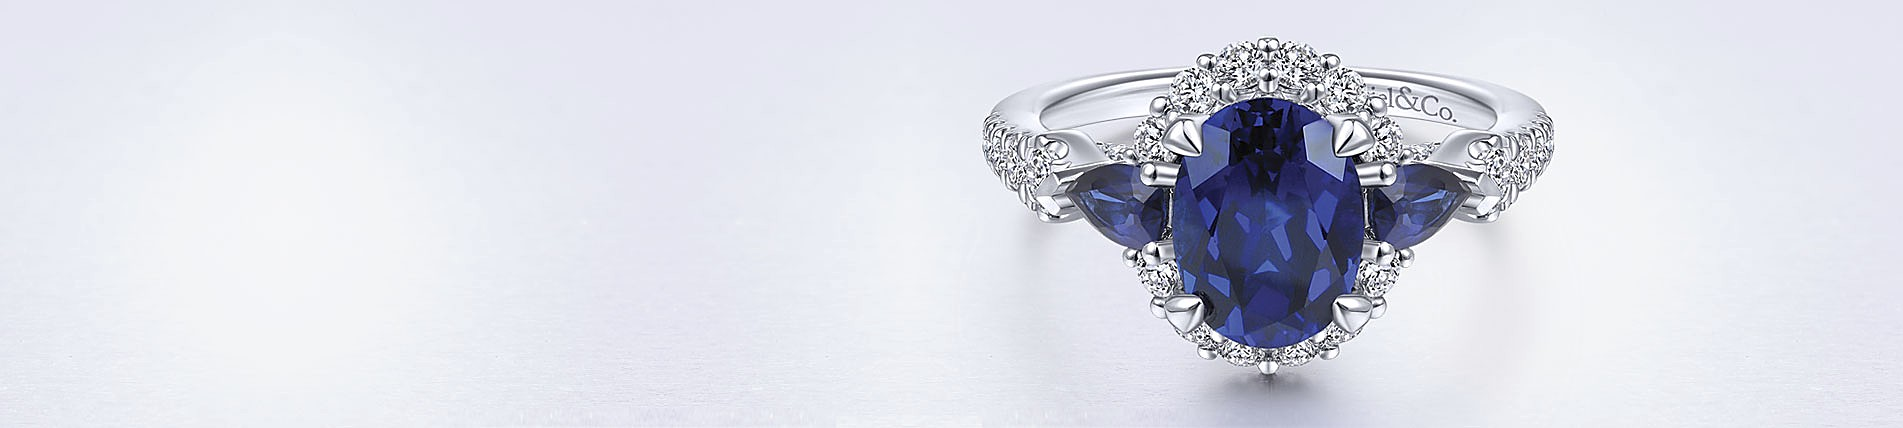 engagement ritani the colored of and blue meaning sapphire gemstone wedding blog rings ring